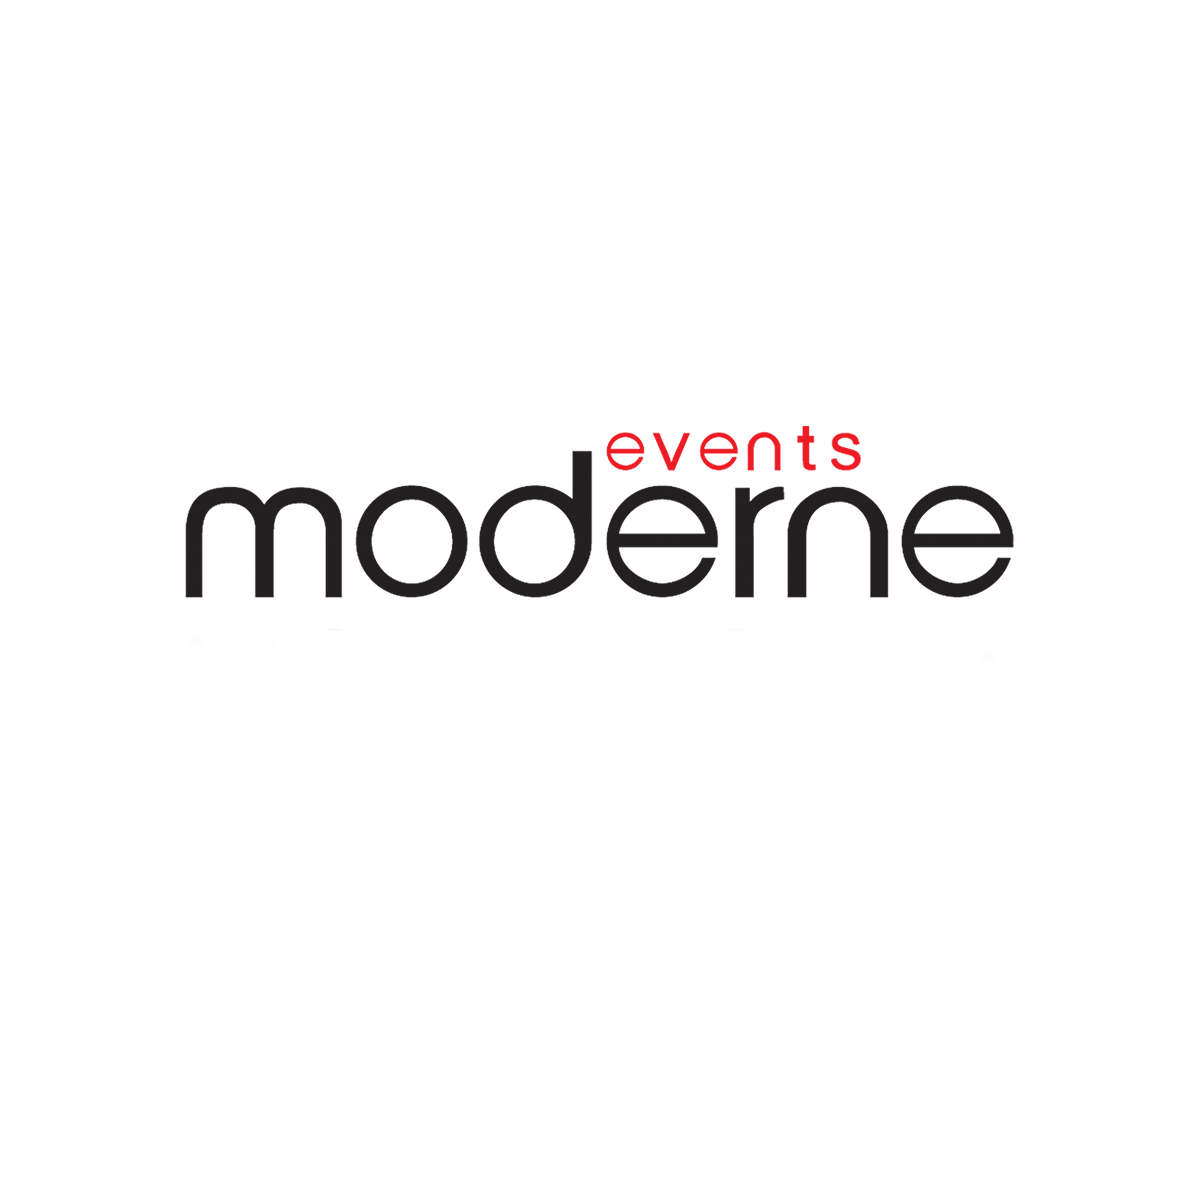 events modern (site logo).png